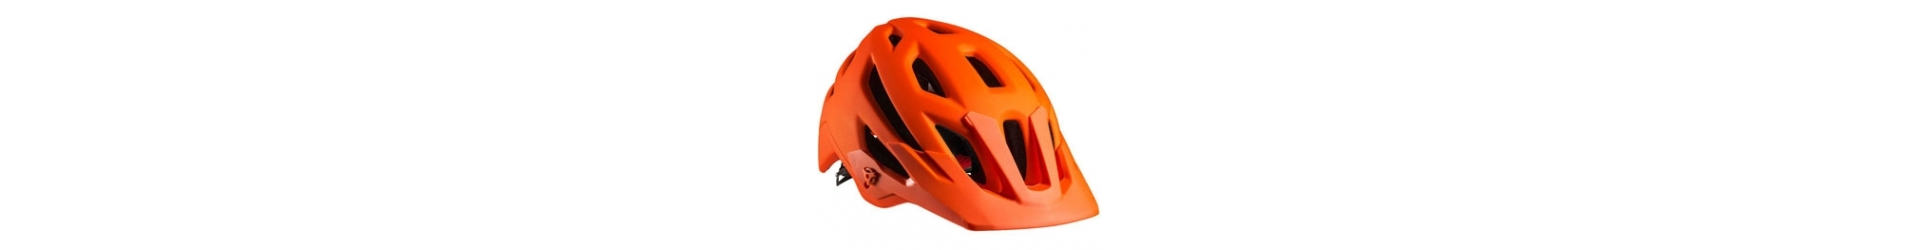 HELMETS & PROTECTION